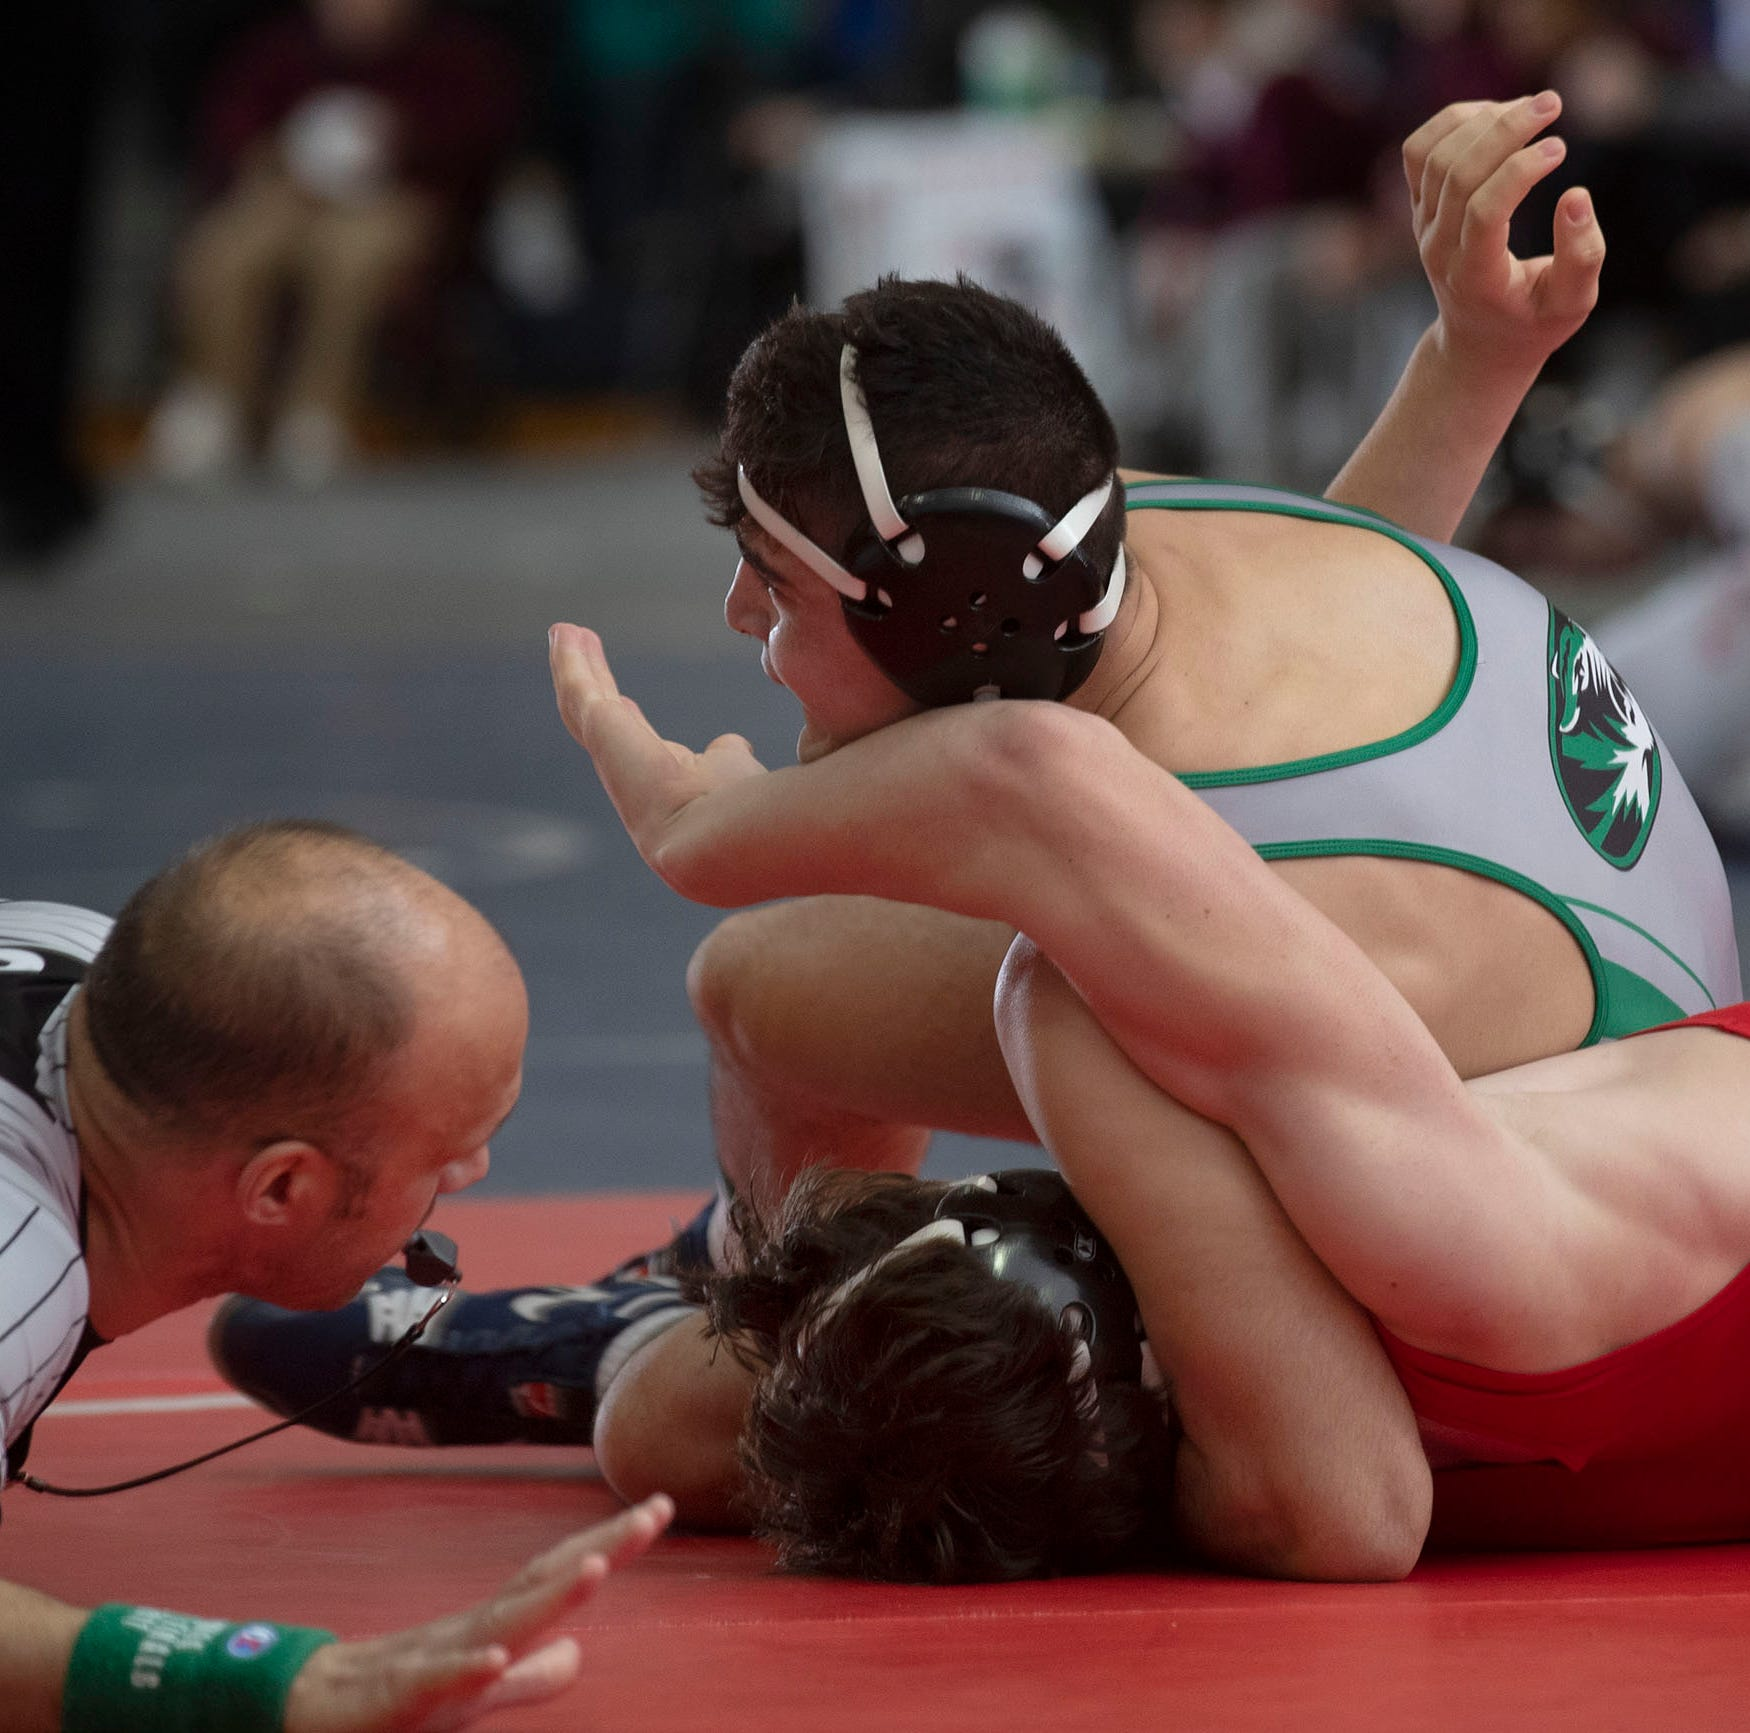 NJ Wrestling: Complete list of NJSIAA Region 5 qualifiers